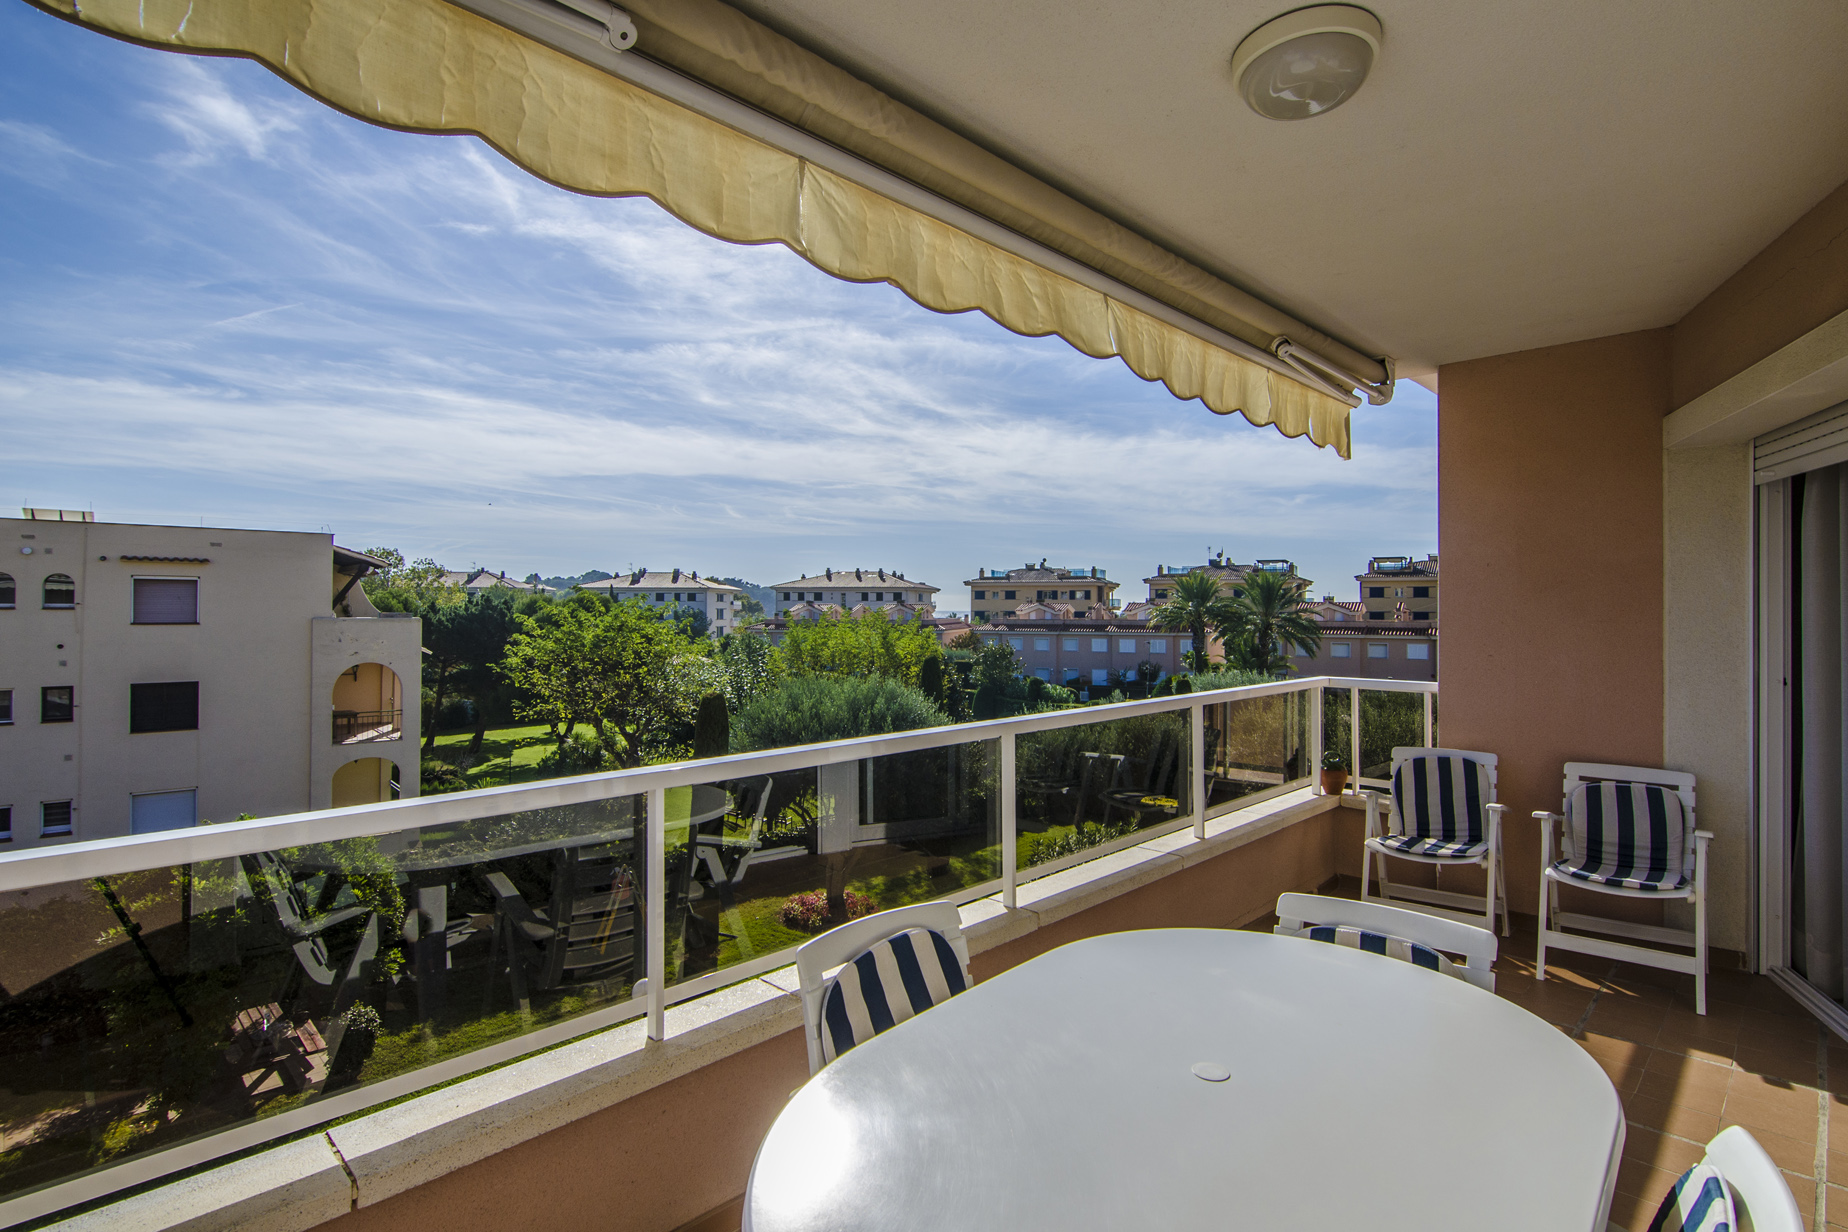 Apartment for Sale at Nice duplex penthouse in S'Agaró just 150 metres from the beach S'Agaro, Costa Brava, 17248 Spain